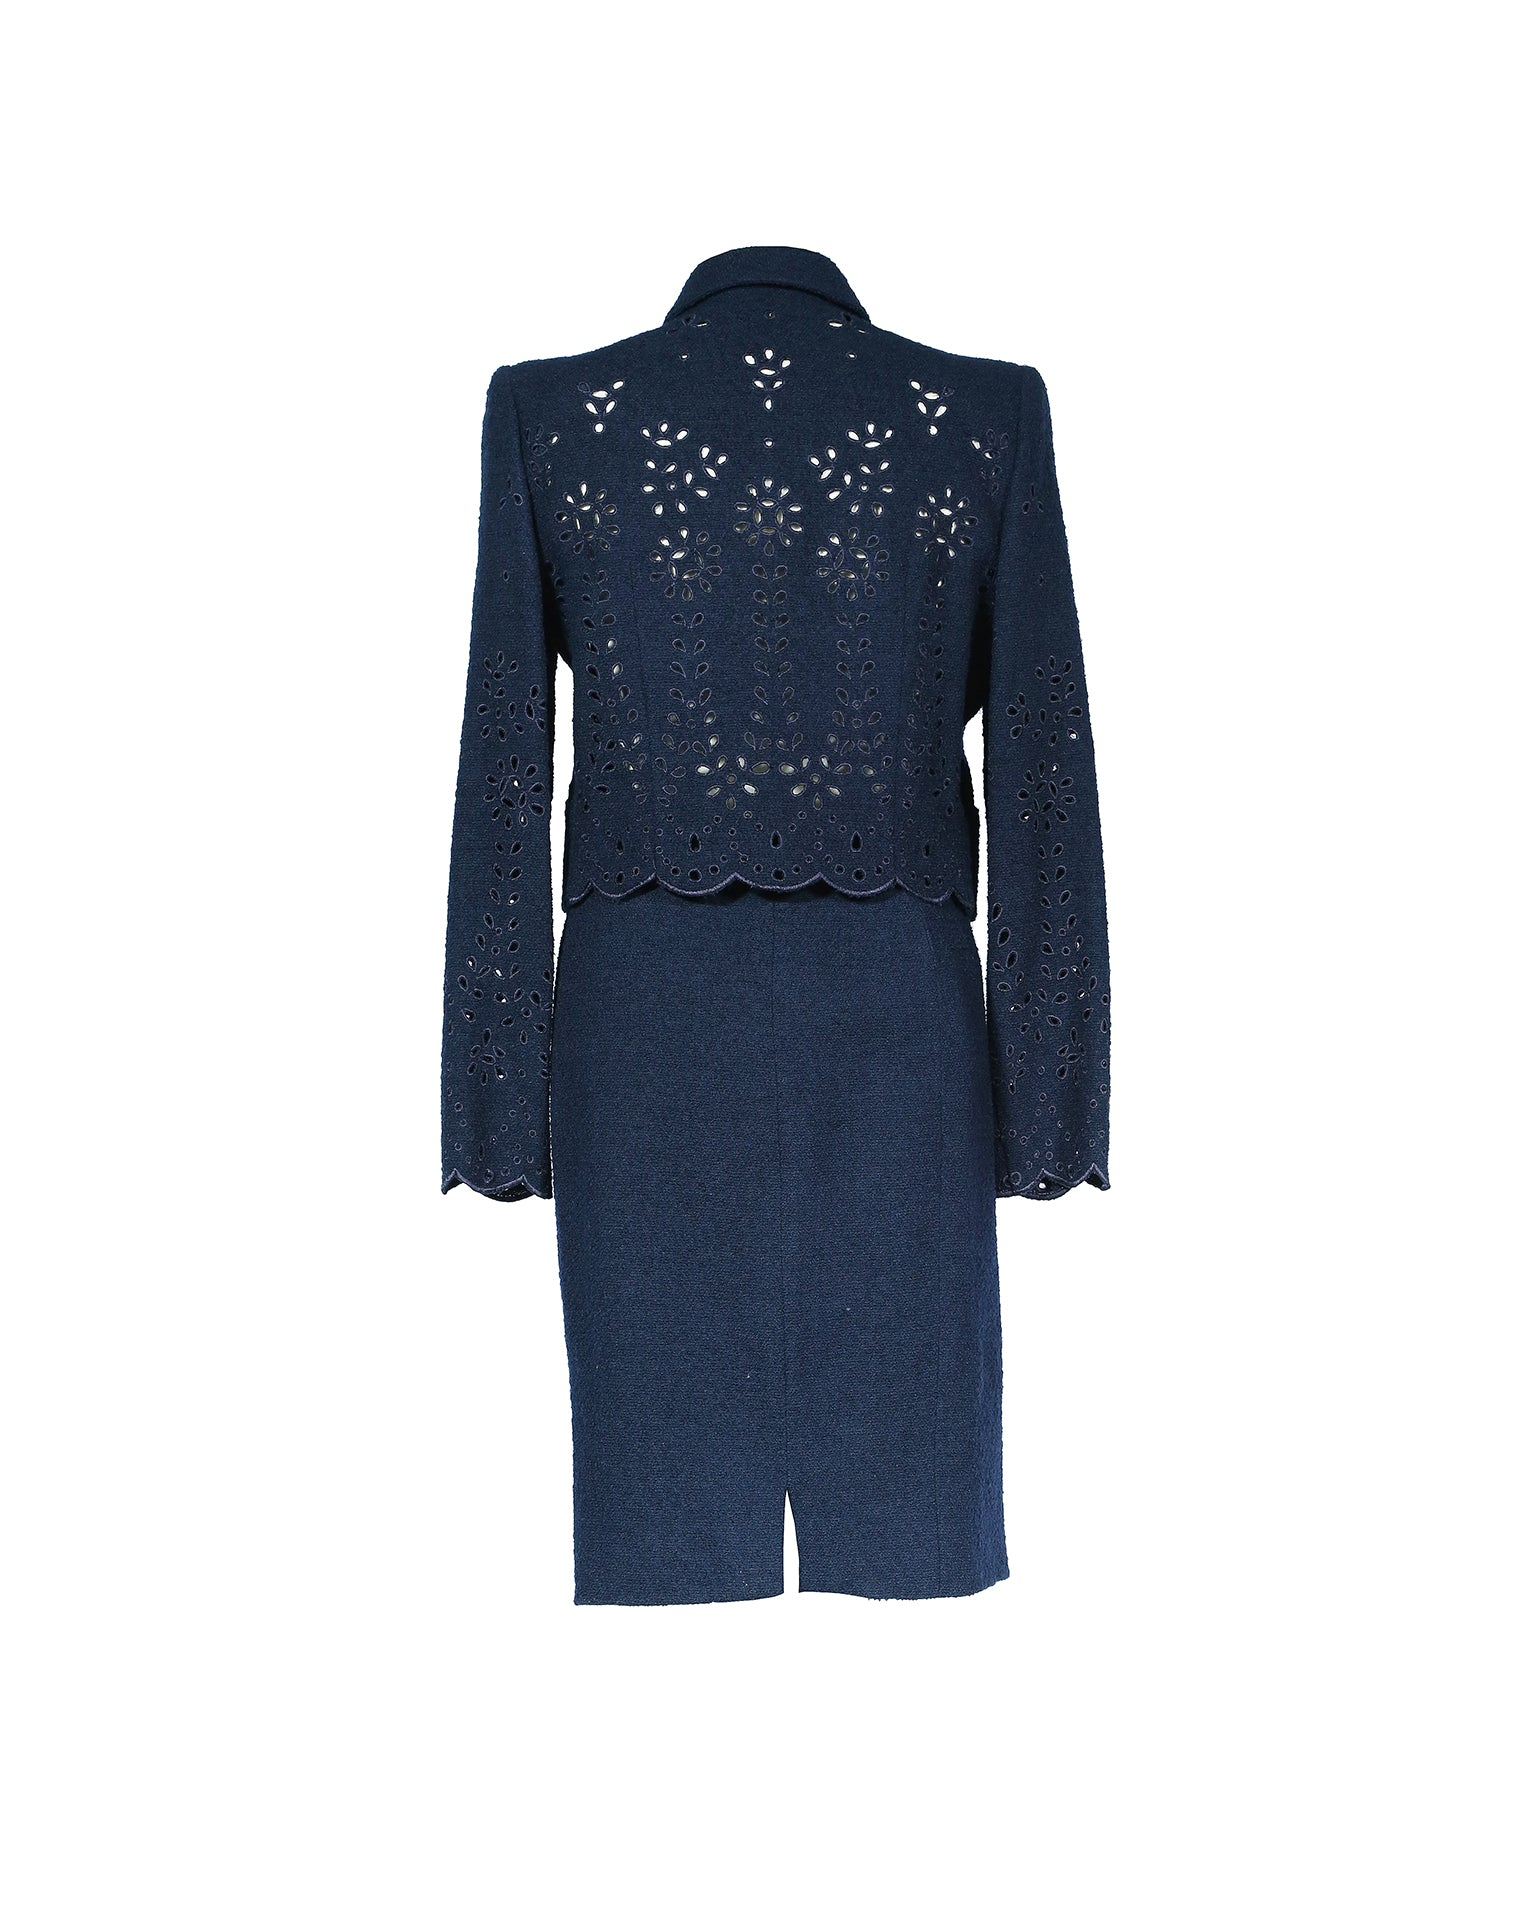 Valentino Suit: Skirt and Embroidered Coat in Black Wool Size 38 (EU)